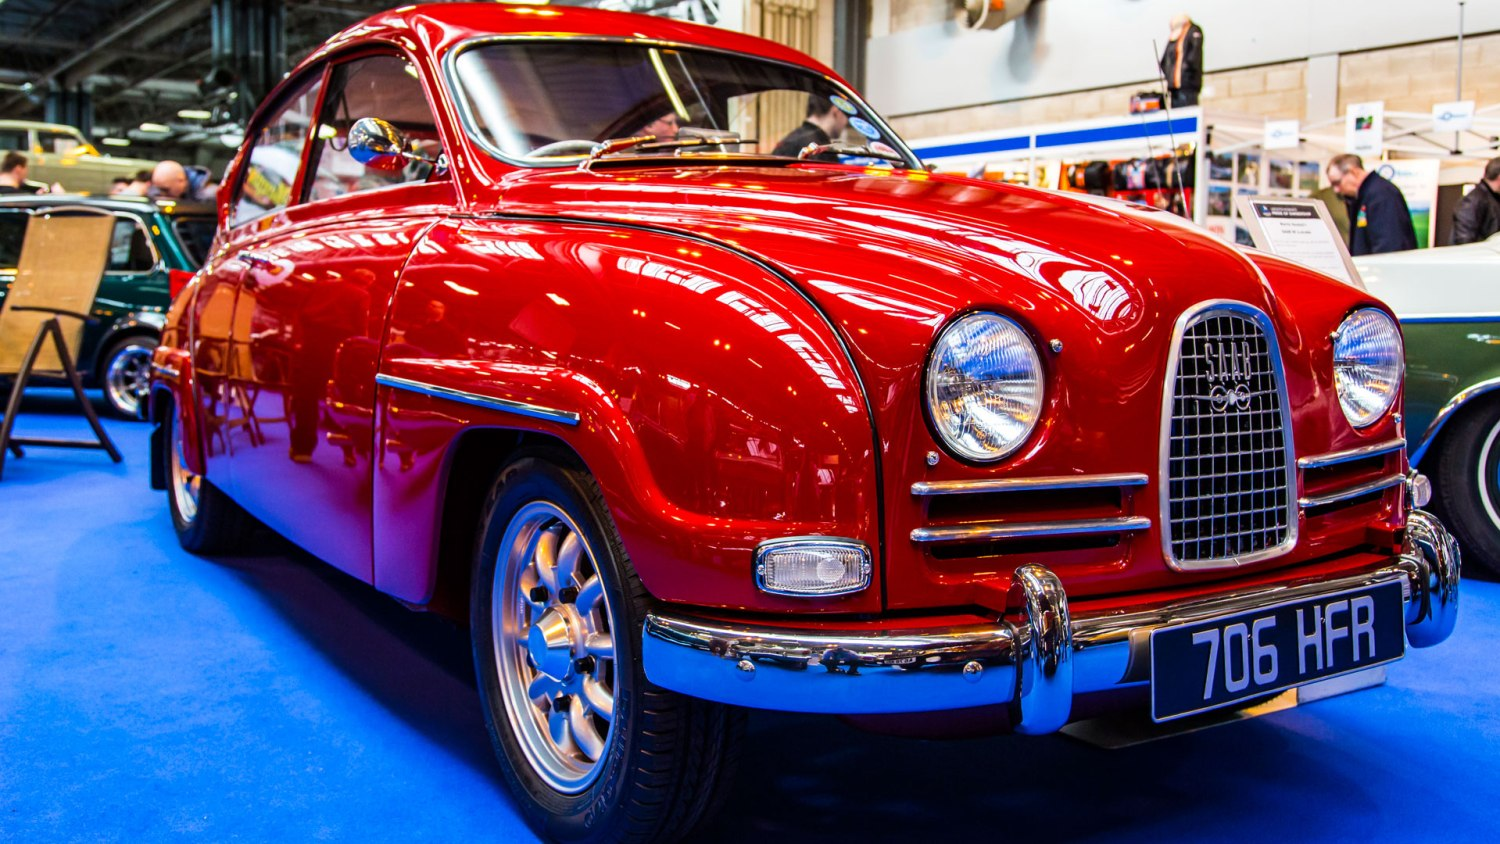 American Motor Show Calendario.The Best Motoring Events For Car Enthusiasts In 2019